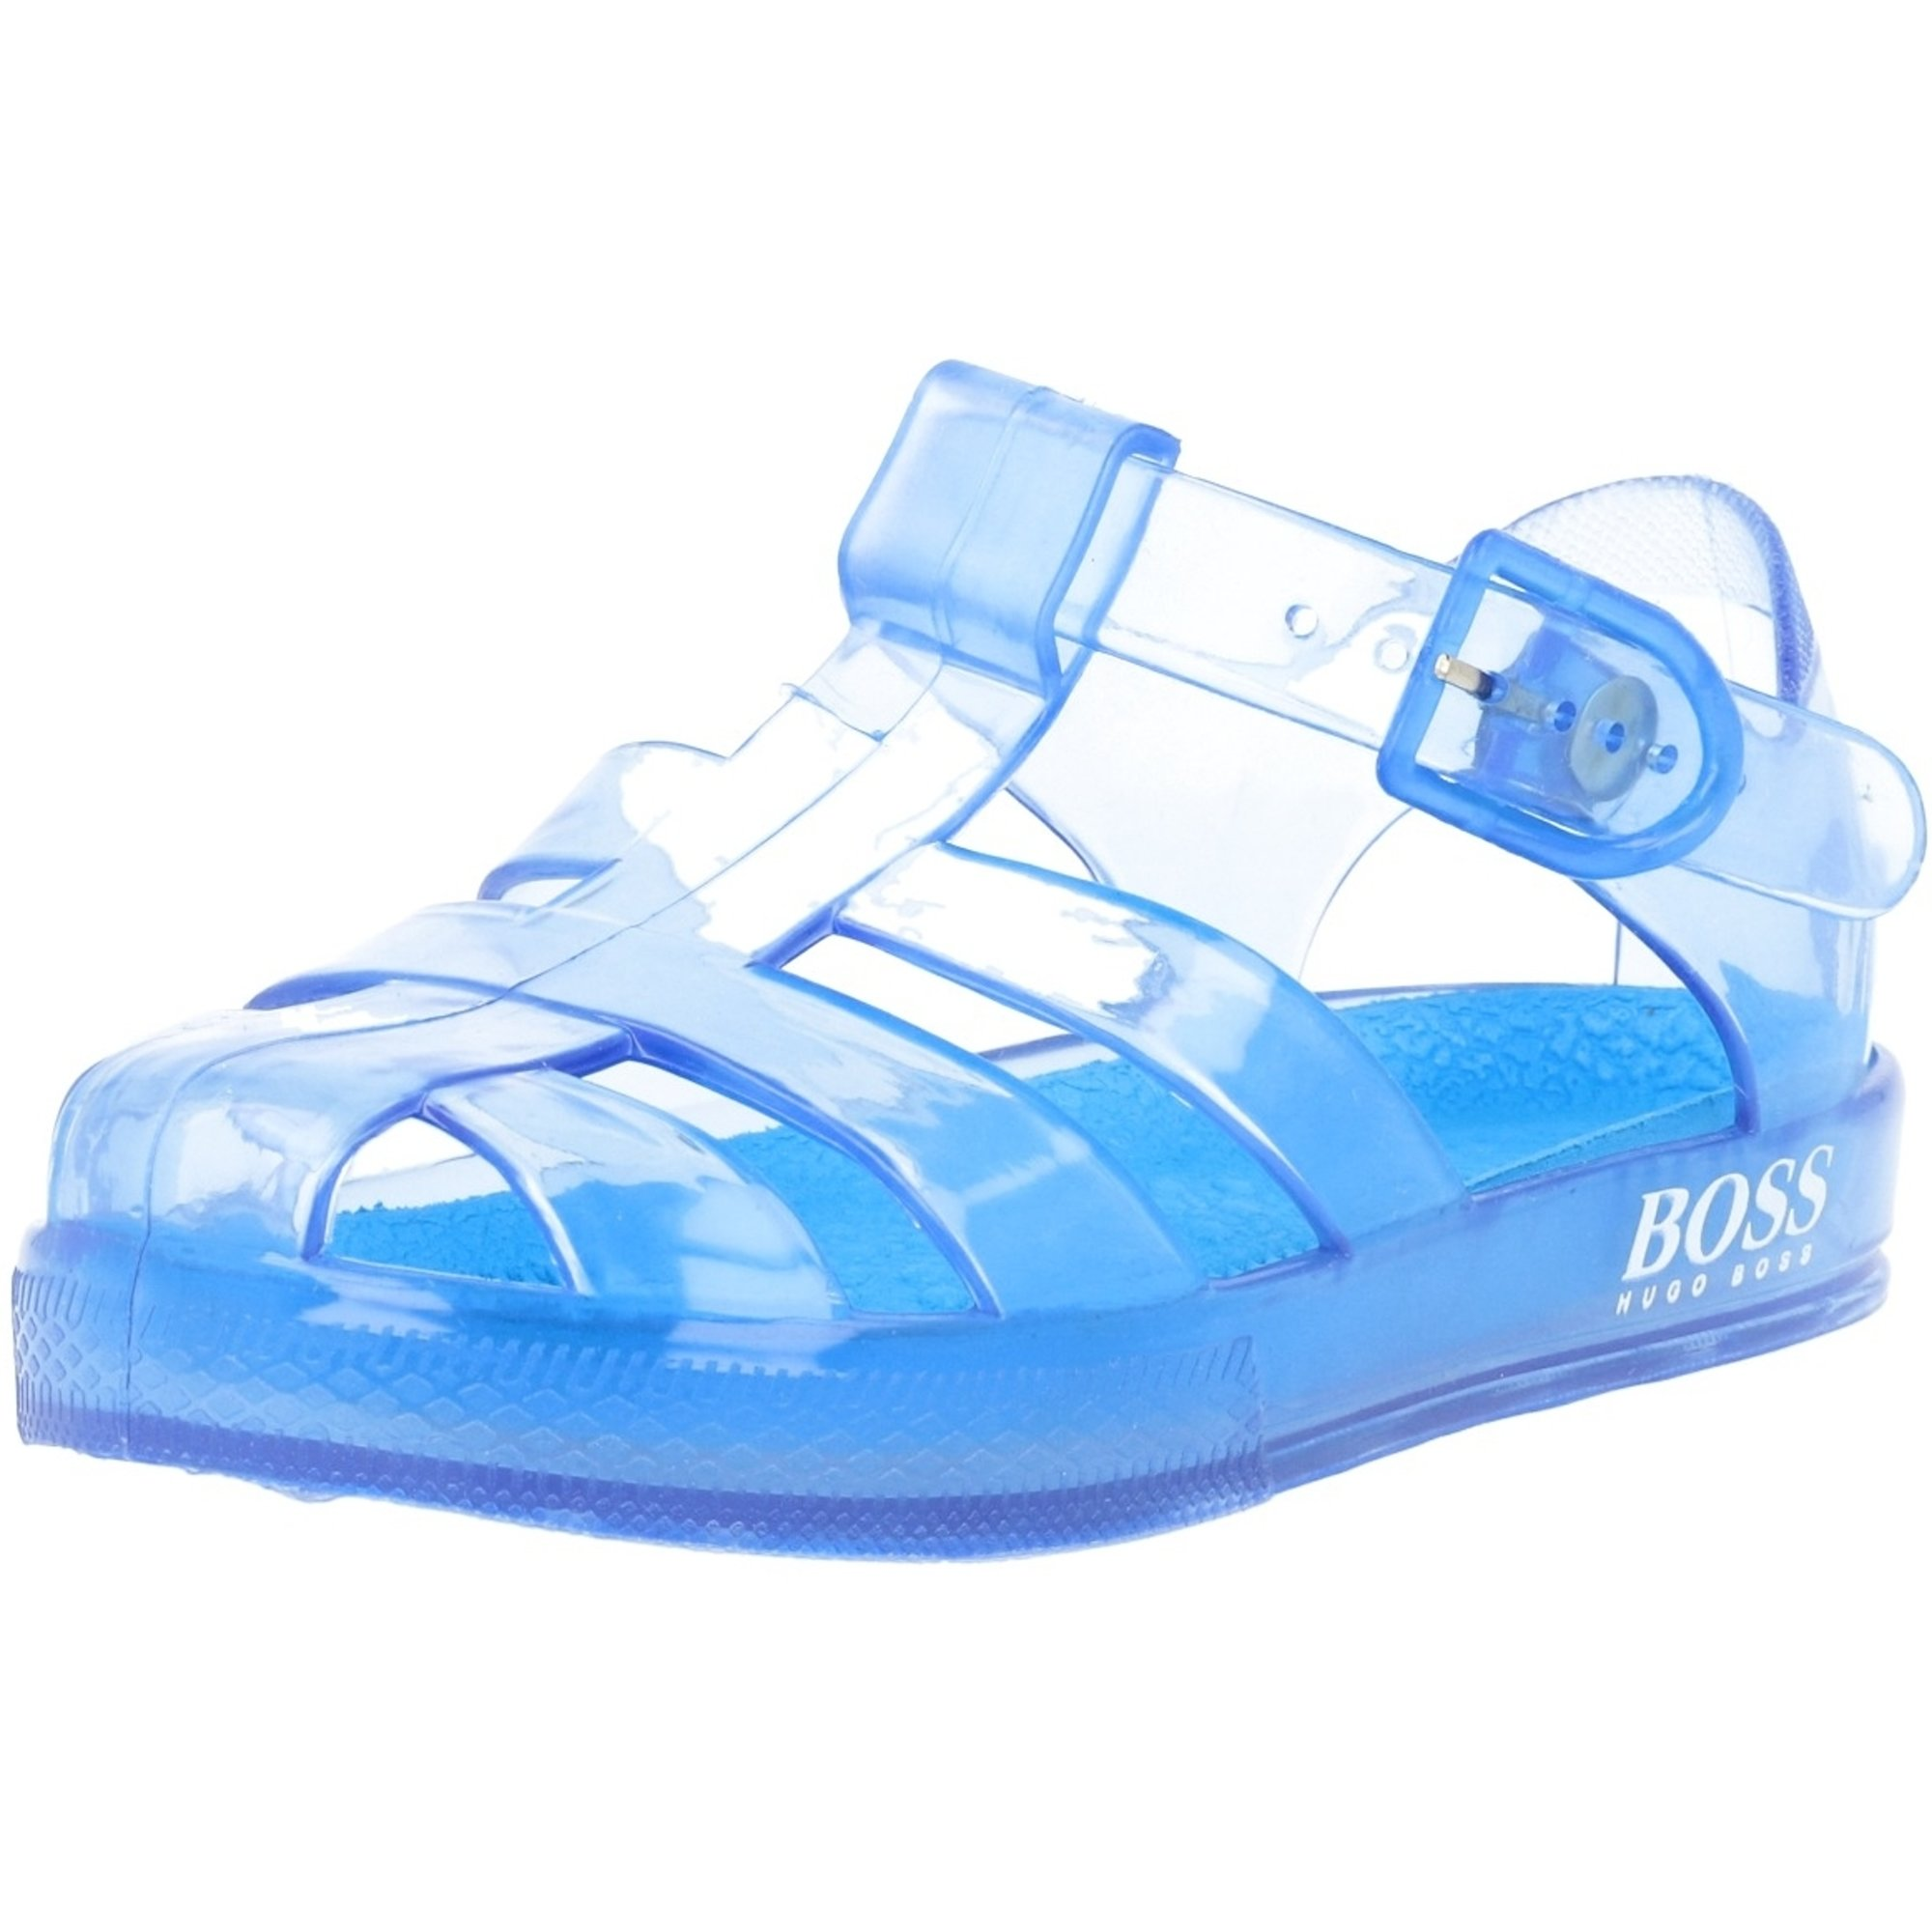 BOSS Jelly Sandals Turquoise PU